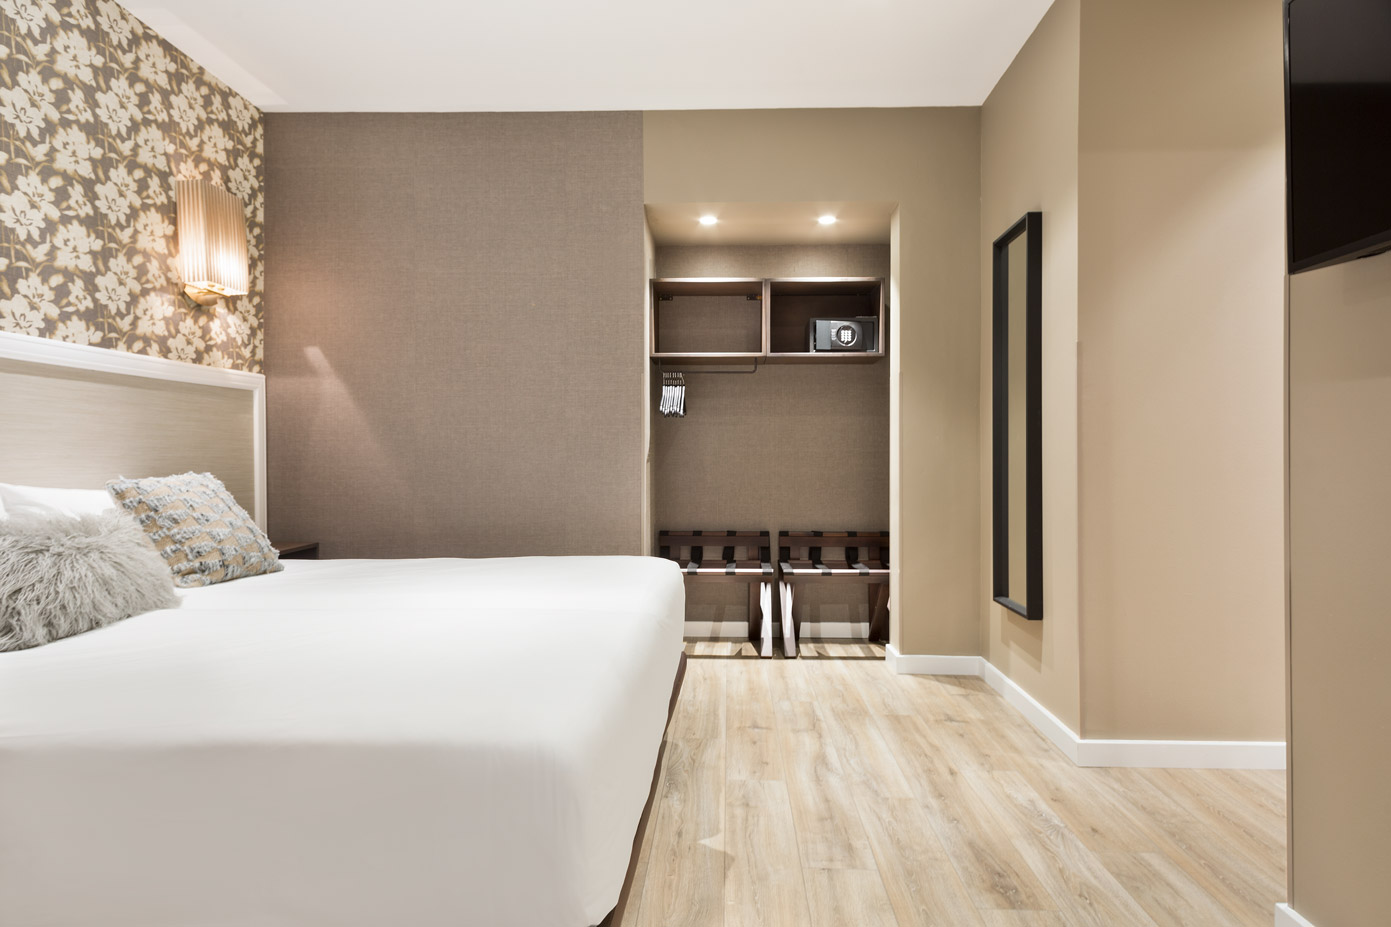 HOTEL_ACTA_SPLENDID_TRIPLE_SUPERIOR_08